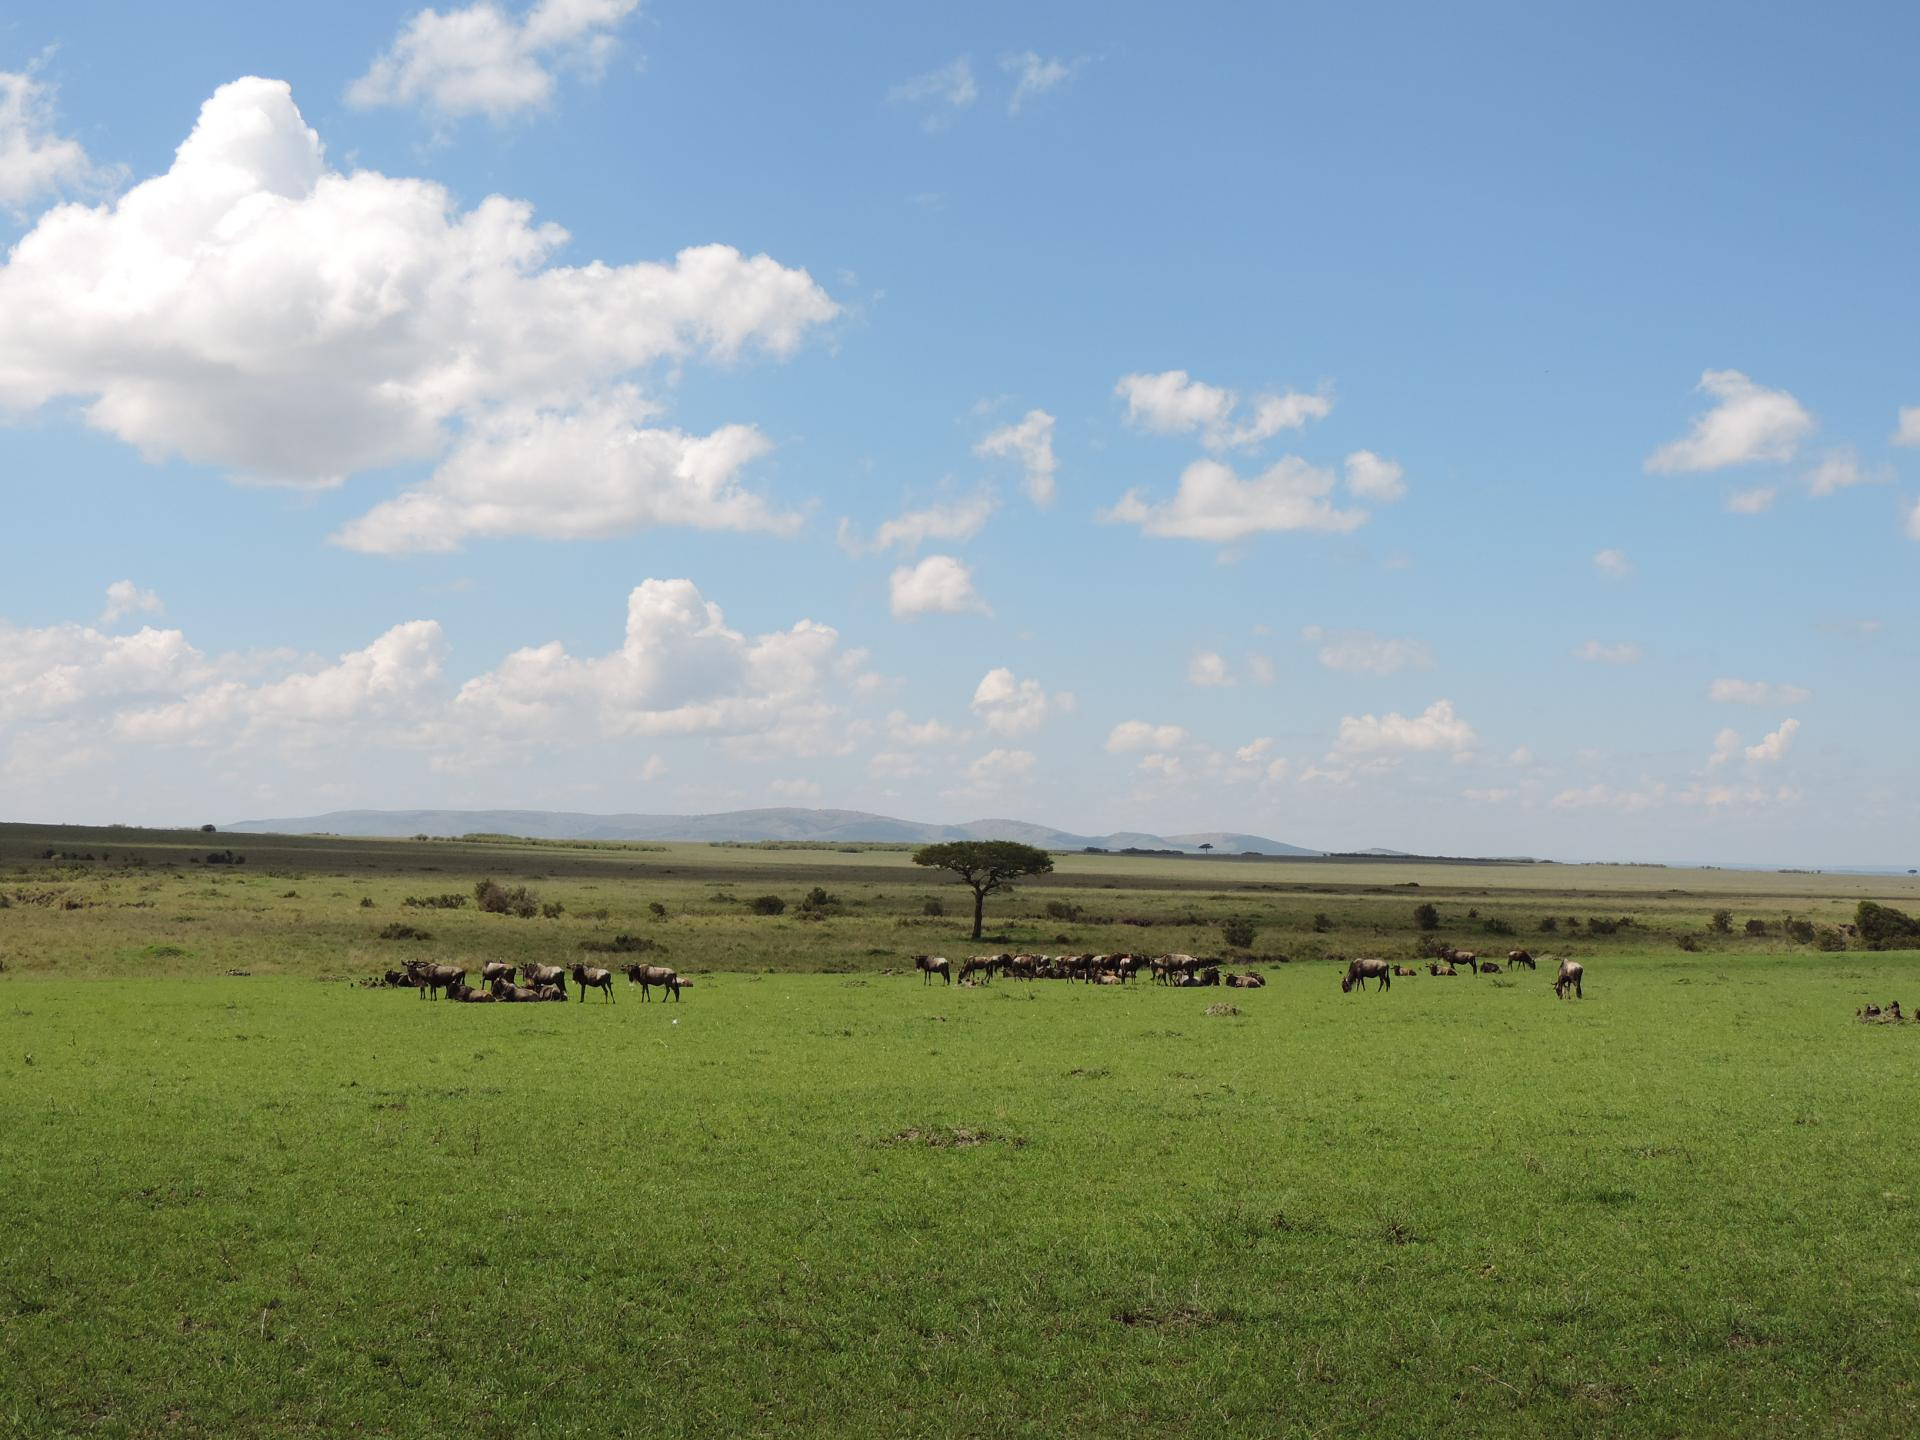 Wildebeests Masai Mara Kenya.Photo by YHA Kenya Travel-Budget wildlife safari